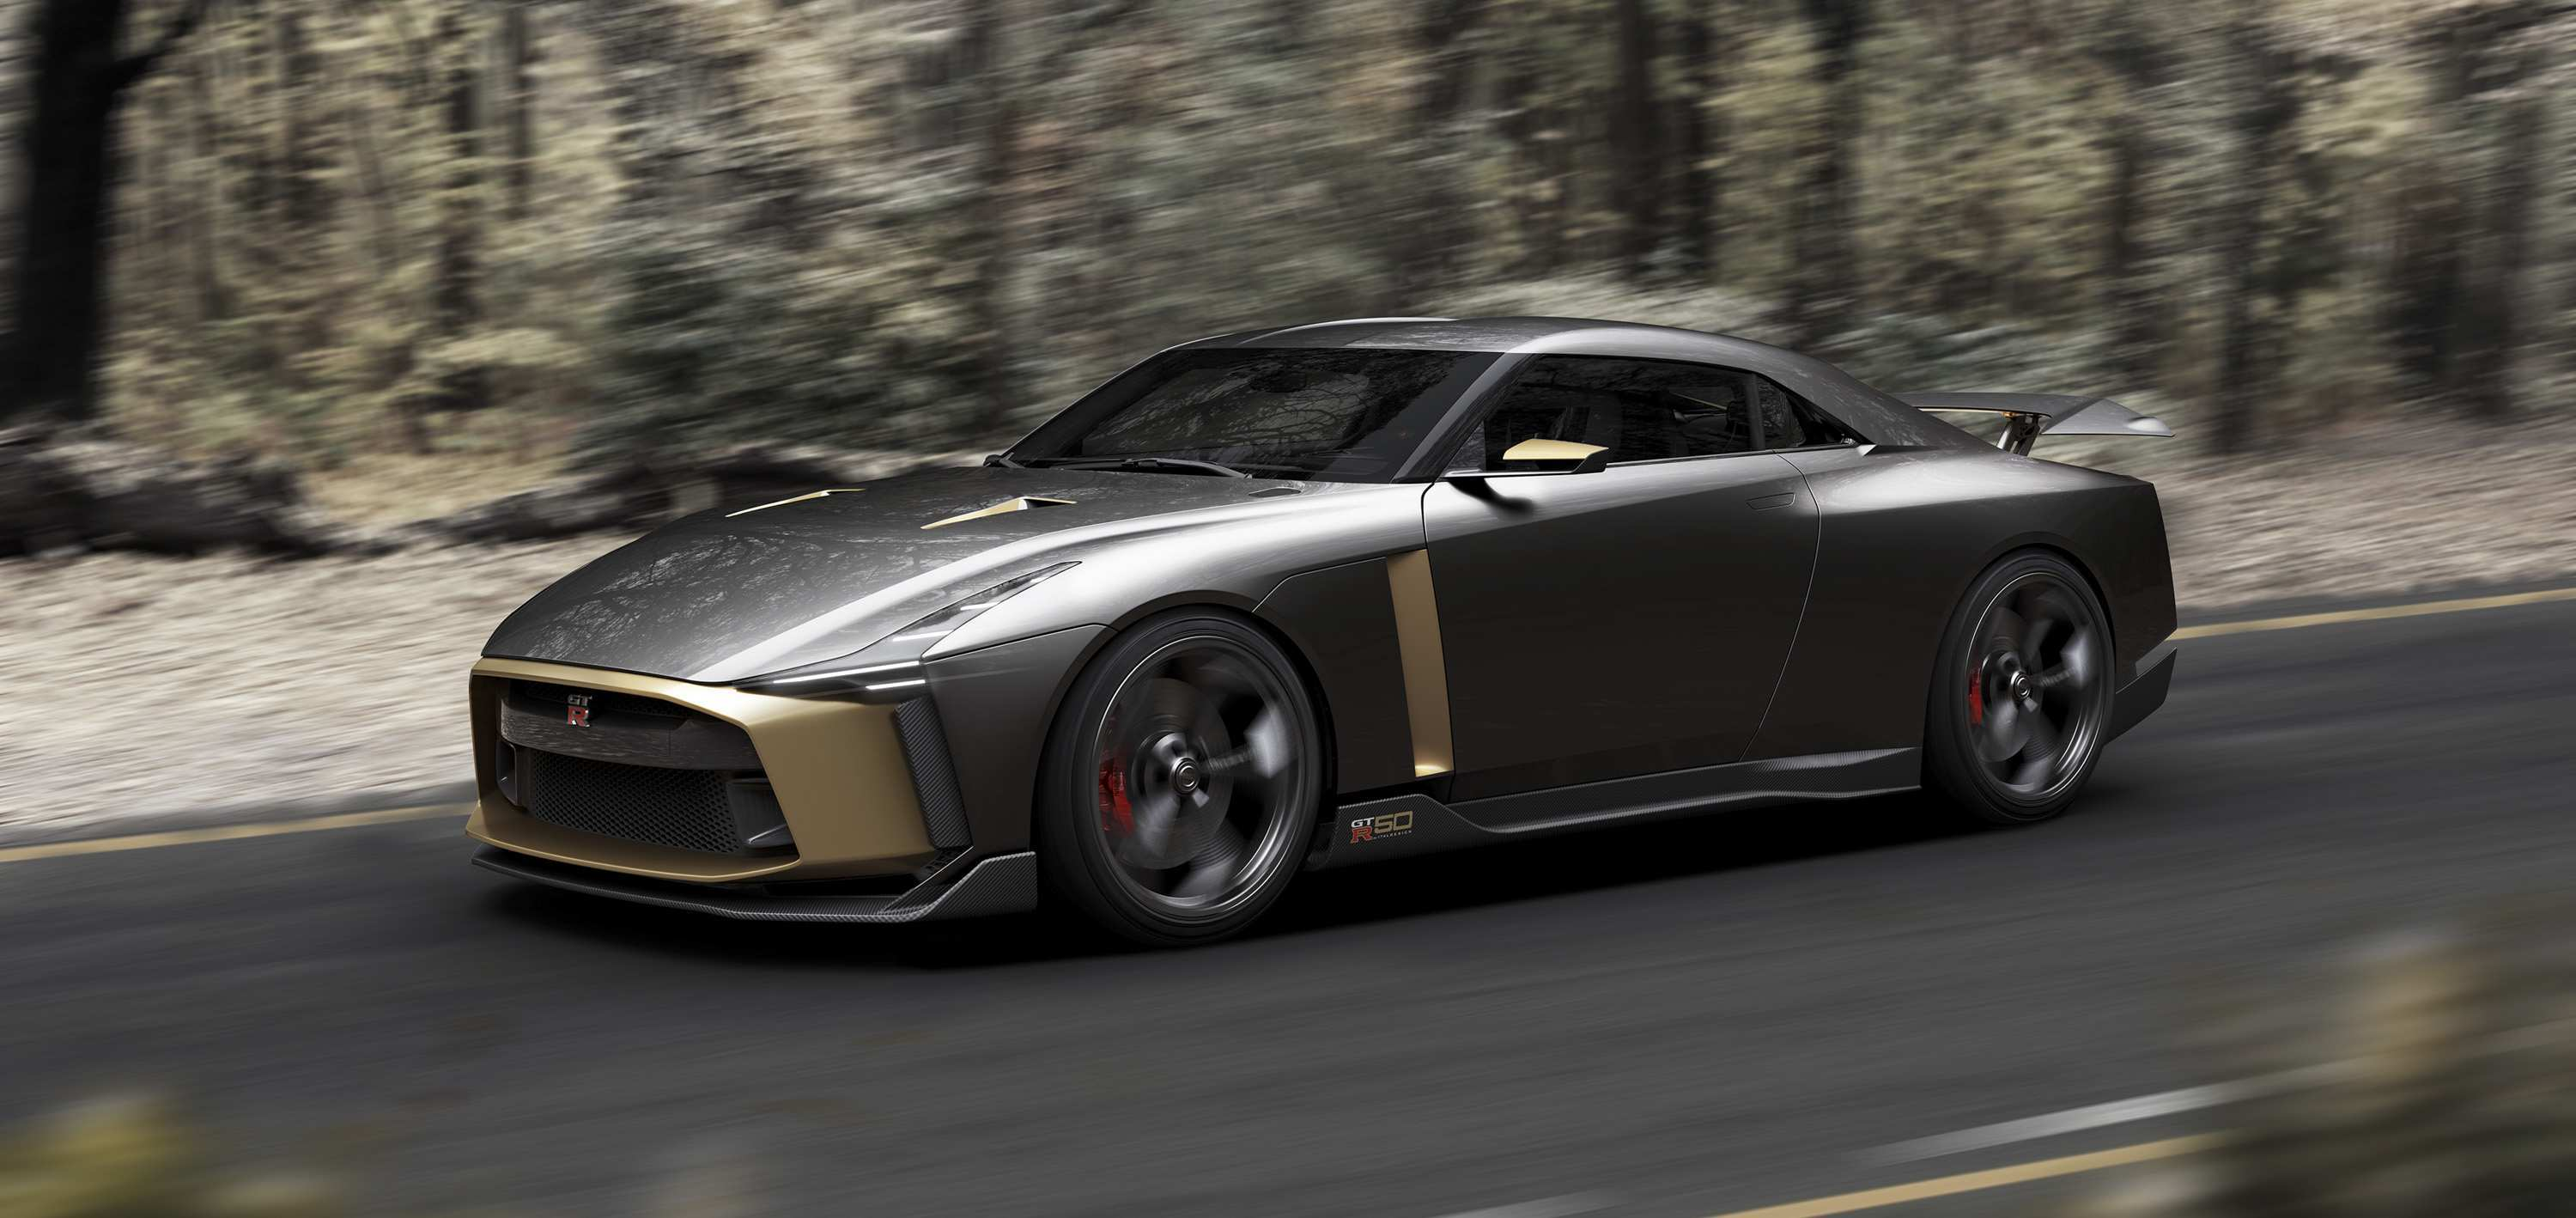 18 Best Review Nissan Gtr 2020 Price Exterior and Interior for Nissan Gtr 2020 Price